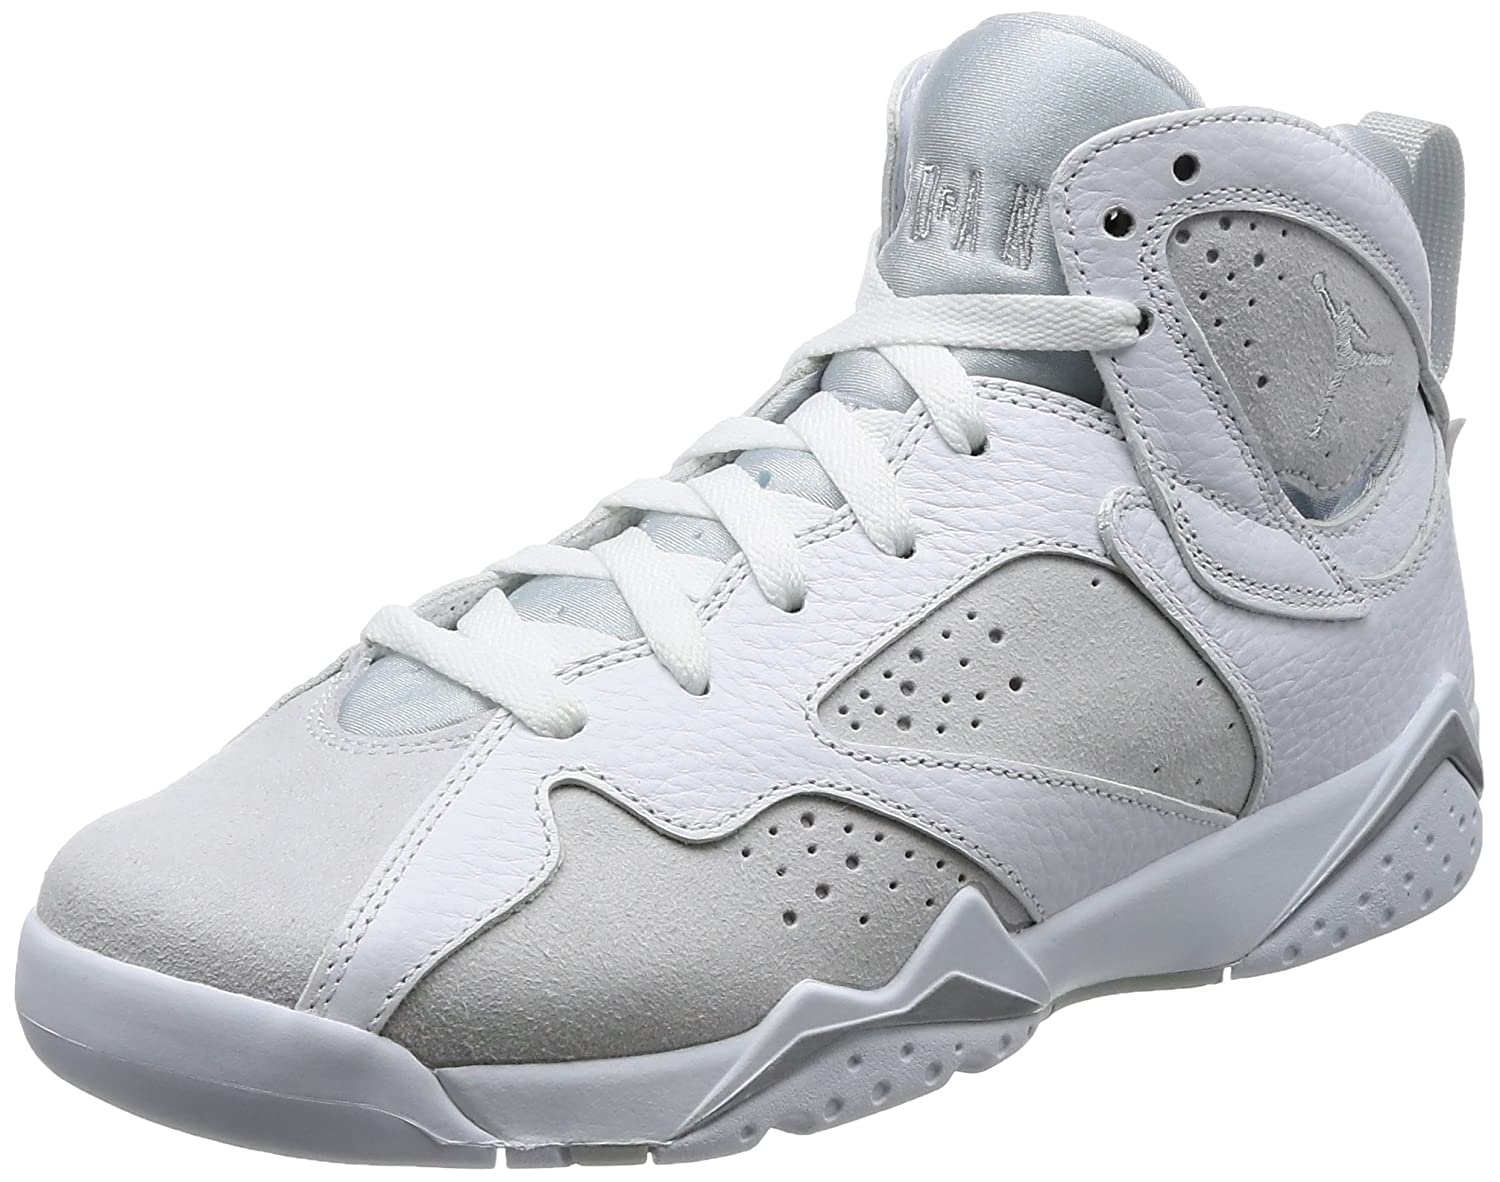 Jordan Air 7 Retro BG Boys Sneakers 304774-034 B071ZBKCYT 6 M US|white/metallic silver-pure platinum